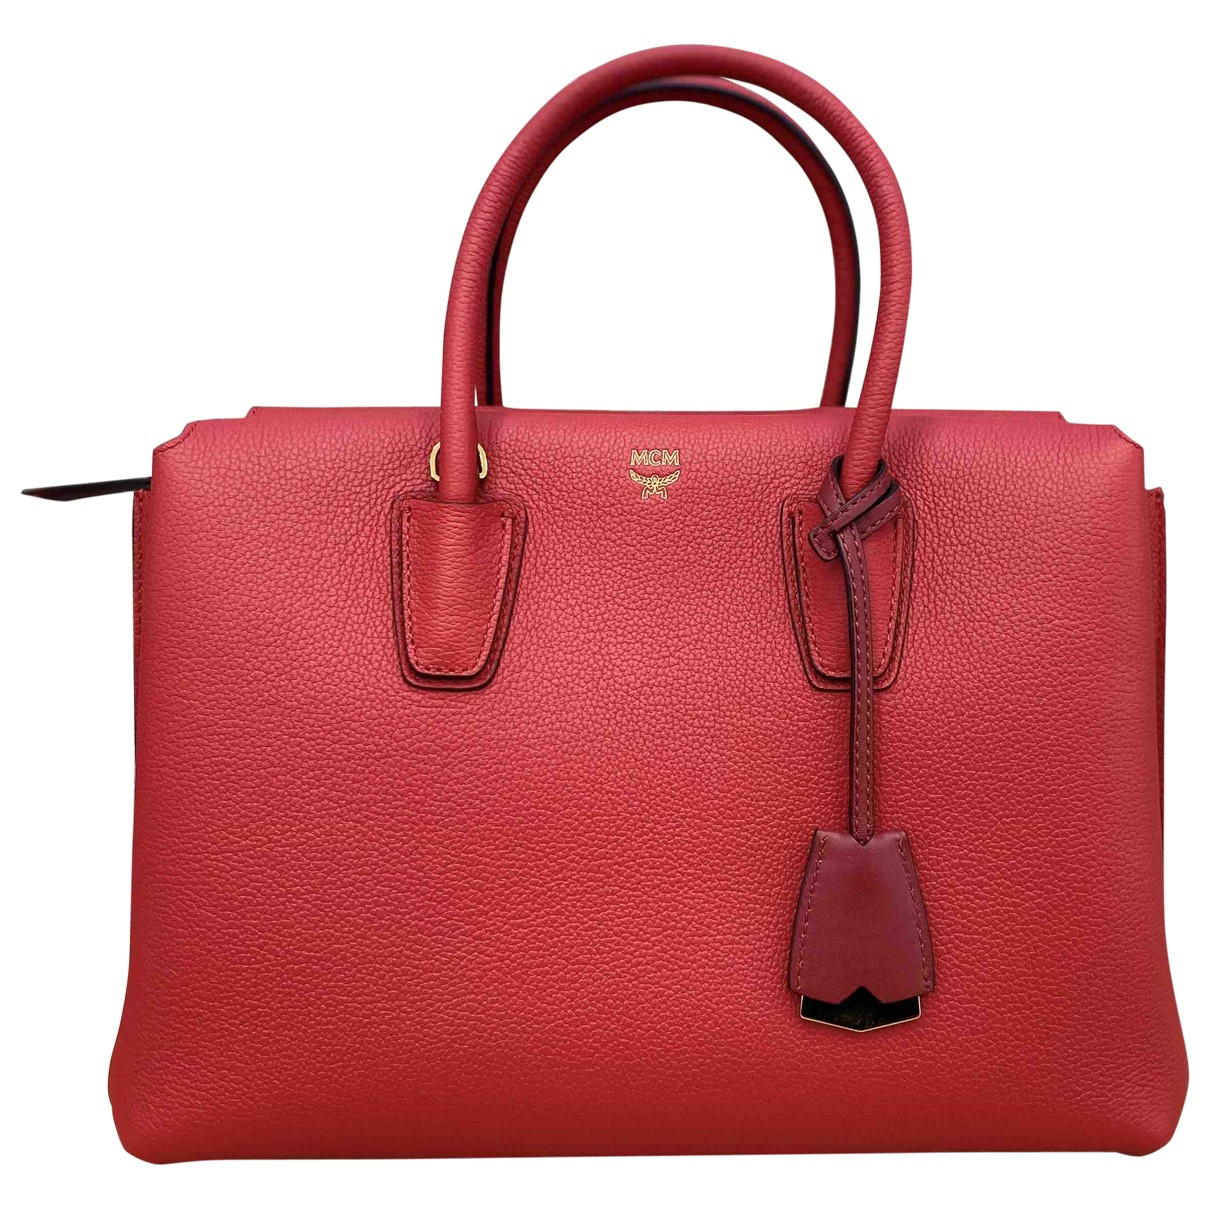 Mcm Milla Red Leather handbag for Women \N